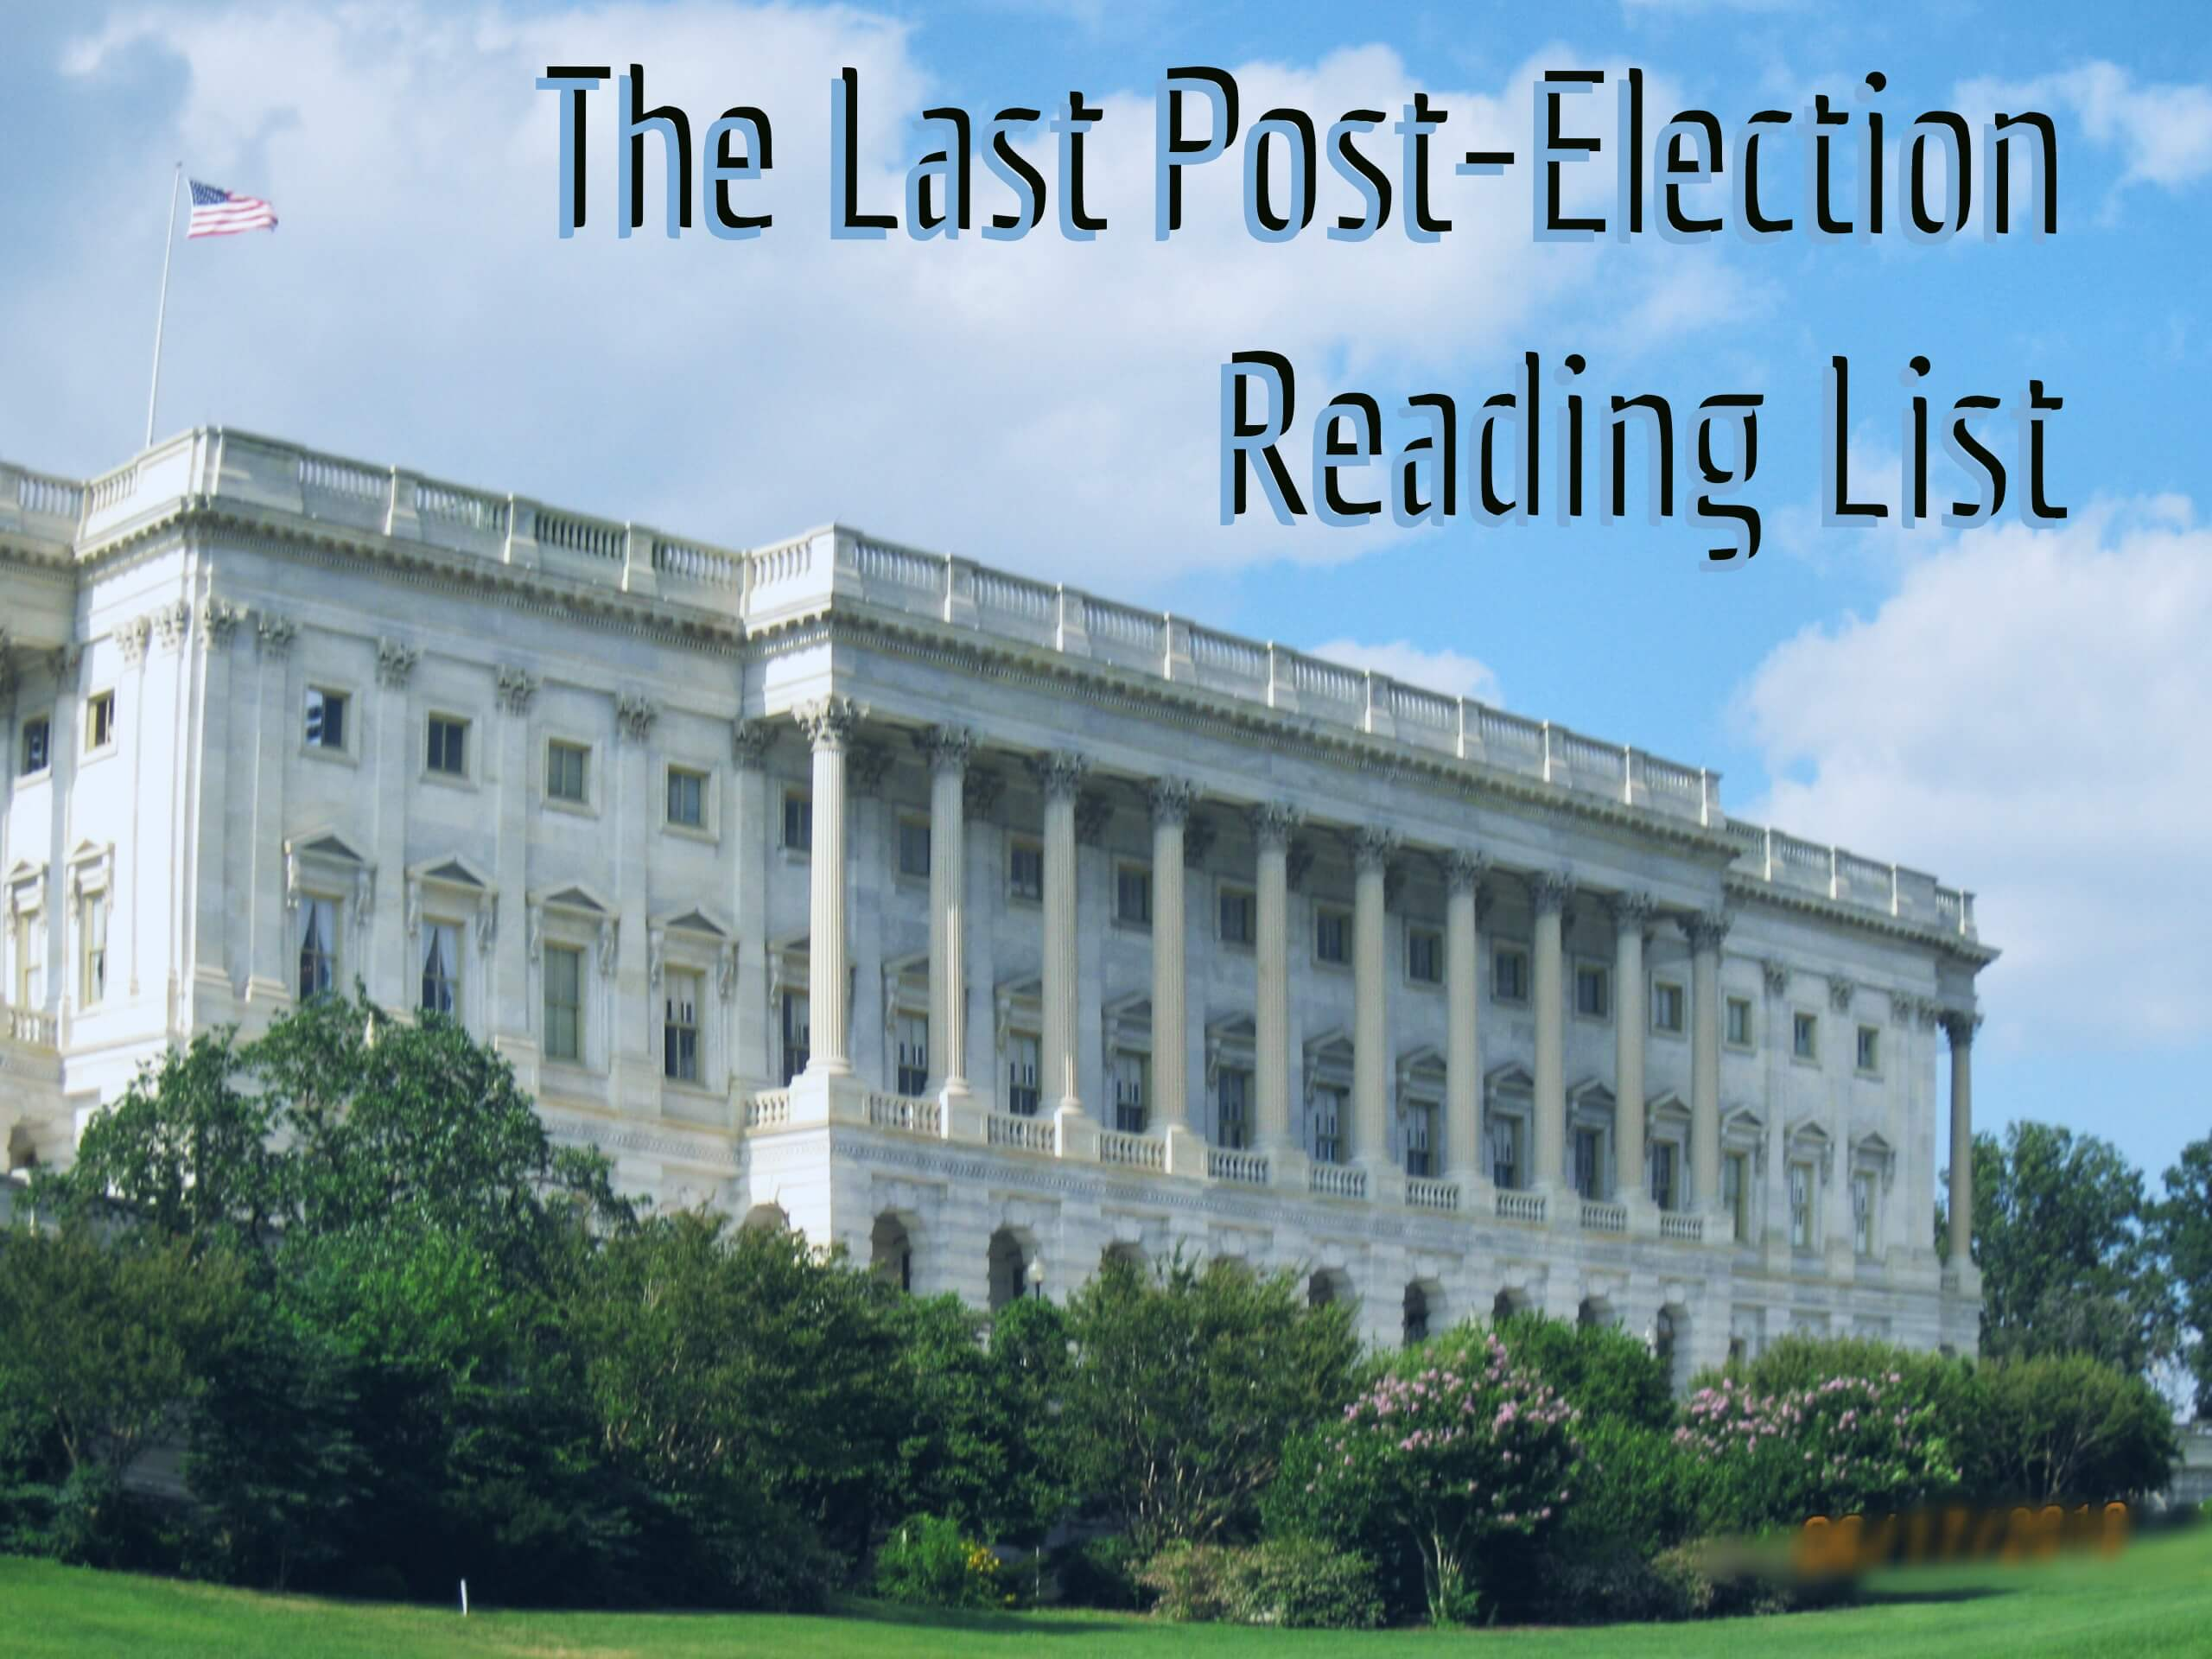 The Last Post-Election Reading List (probably)